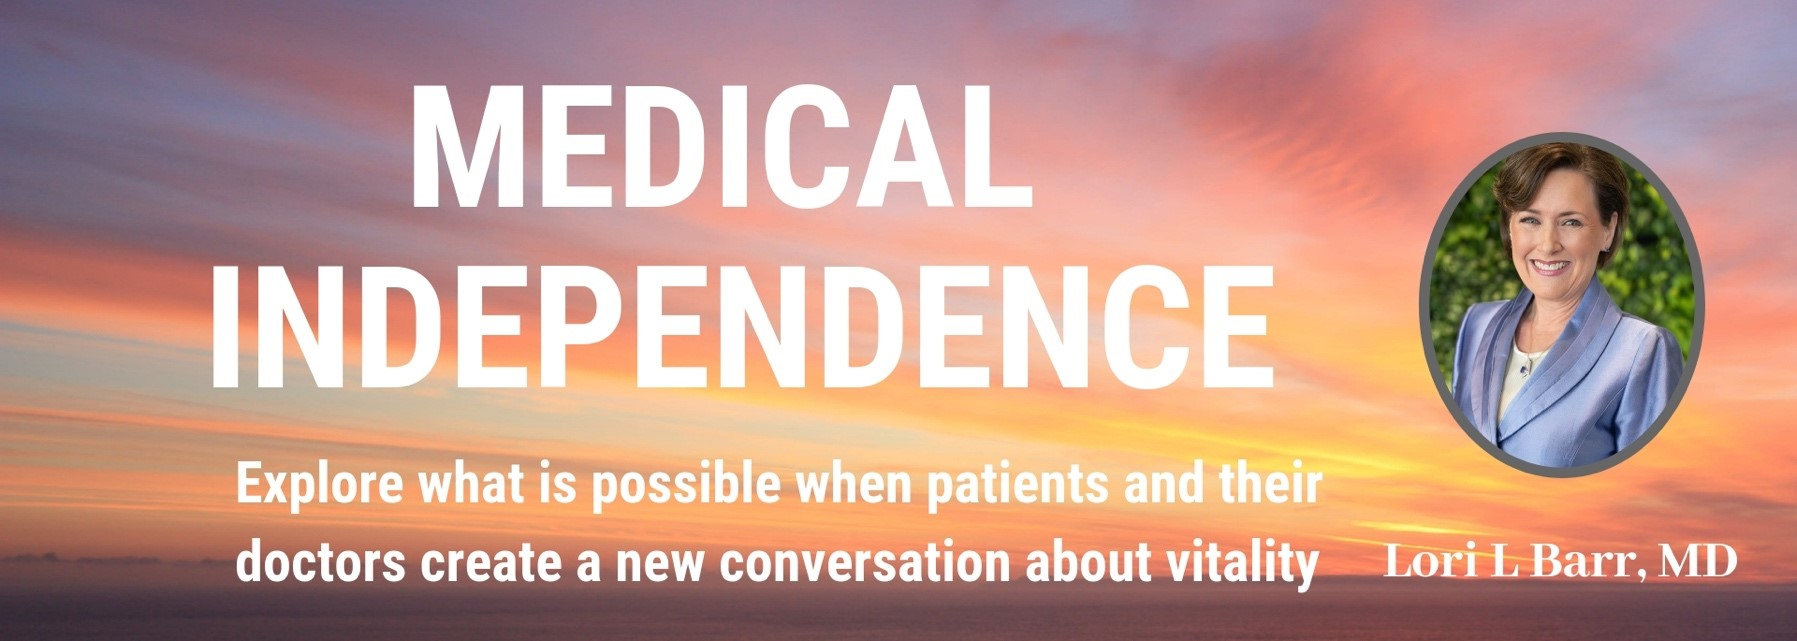 Medical Independence